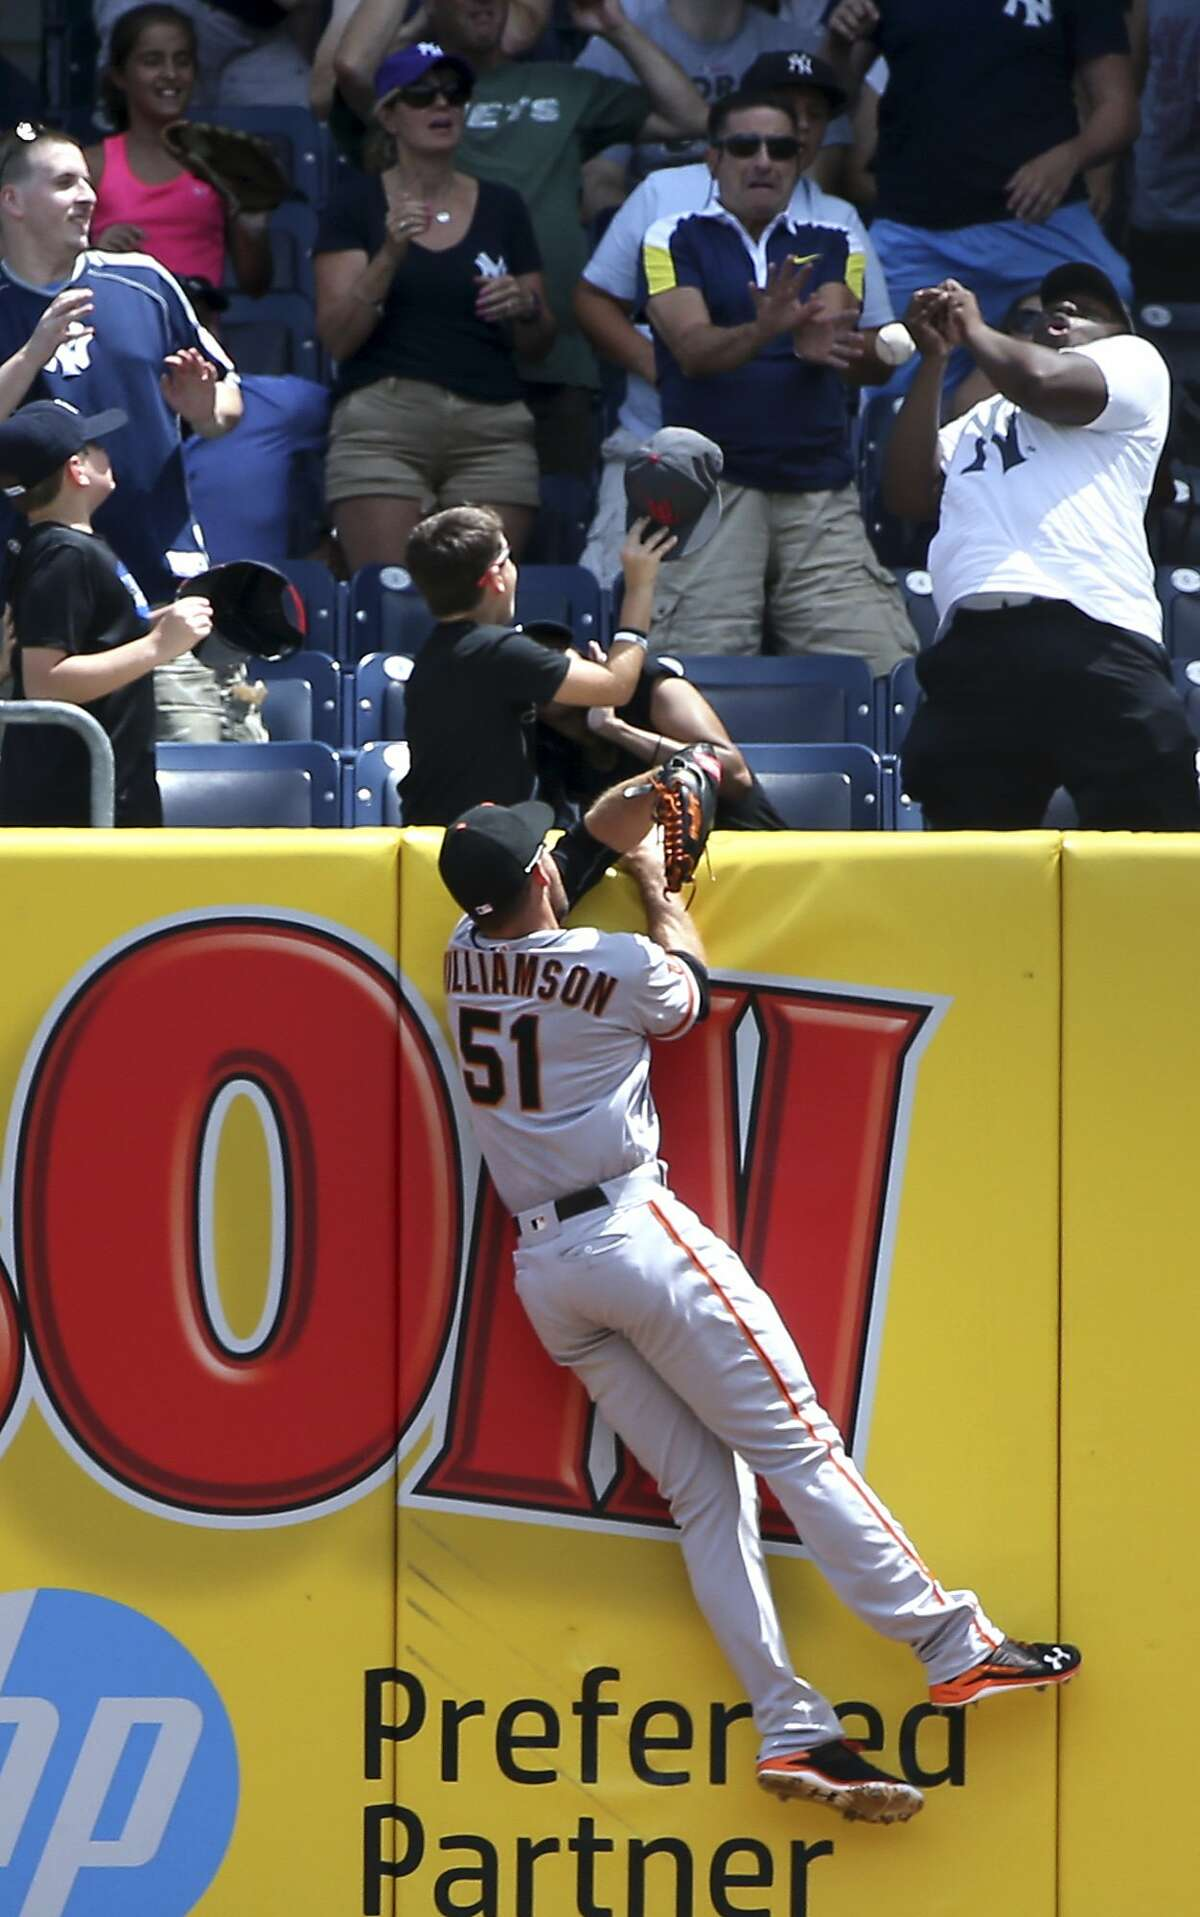 San Francisco Giants right fielder Mac Williamson cannot catch a home run hit by New York Yankees' Carlos Beltran during the first inning of the baseball game at Yankee Stadium, Sunday, July 24, 2016, in New York. (AP Photo/Seth Wenig)